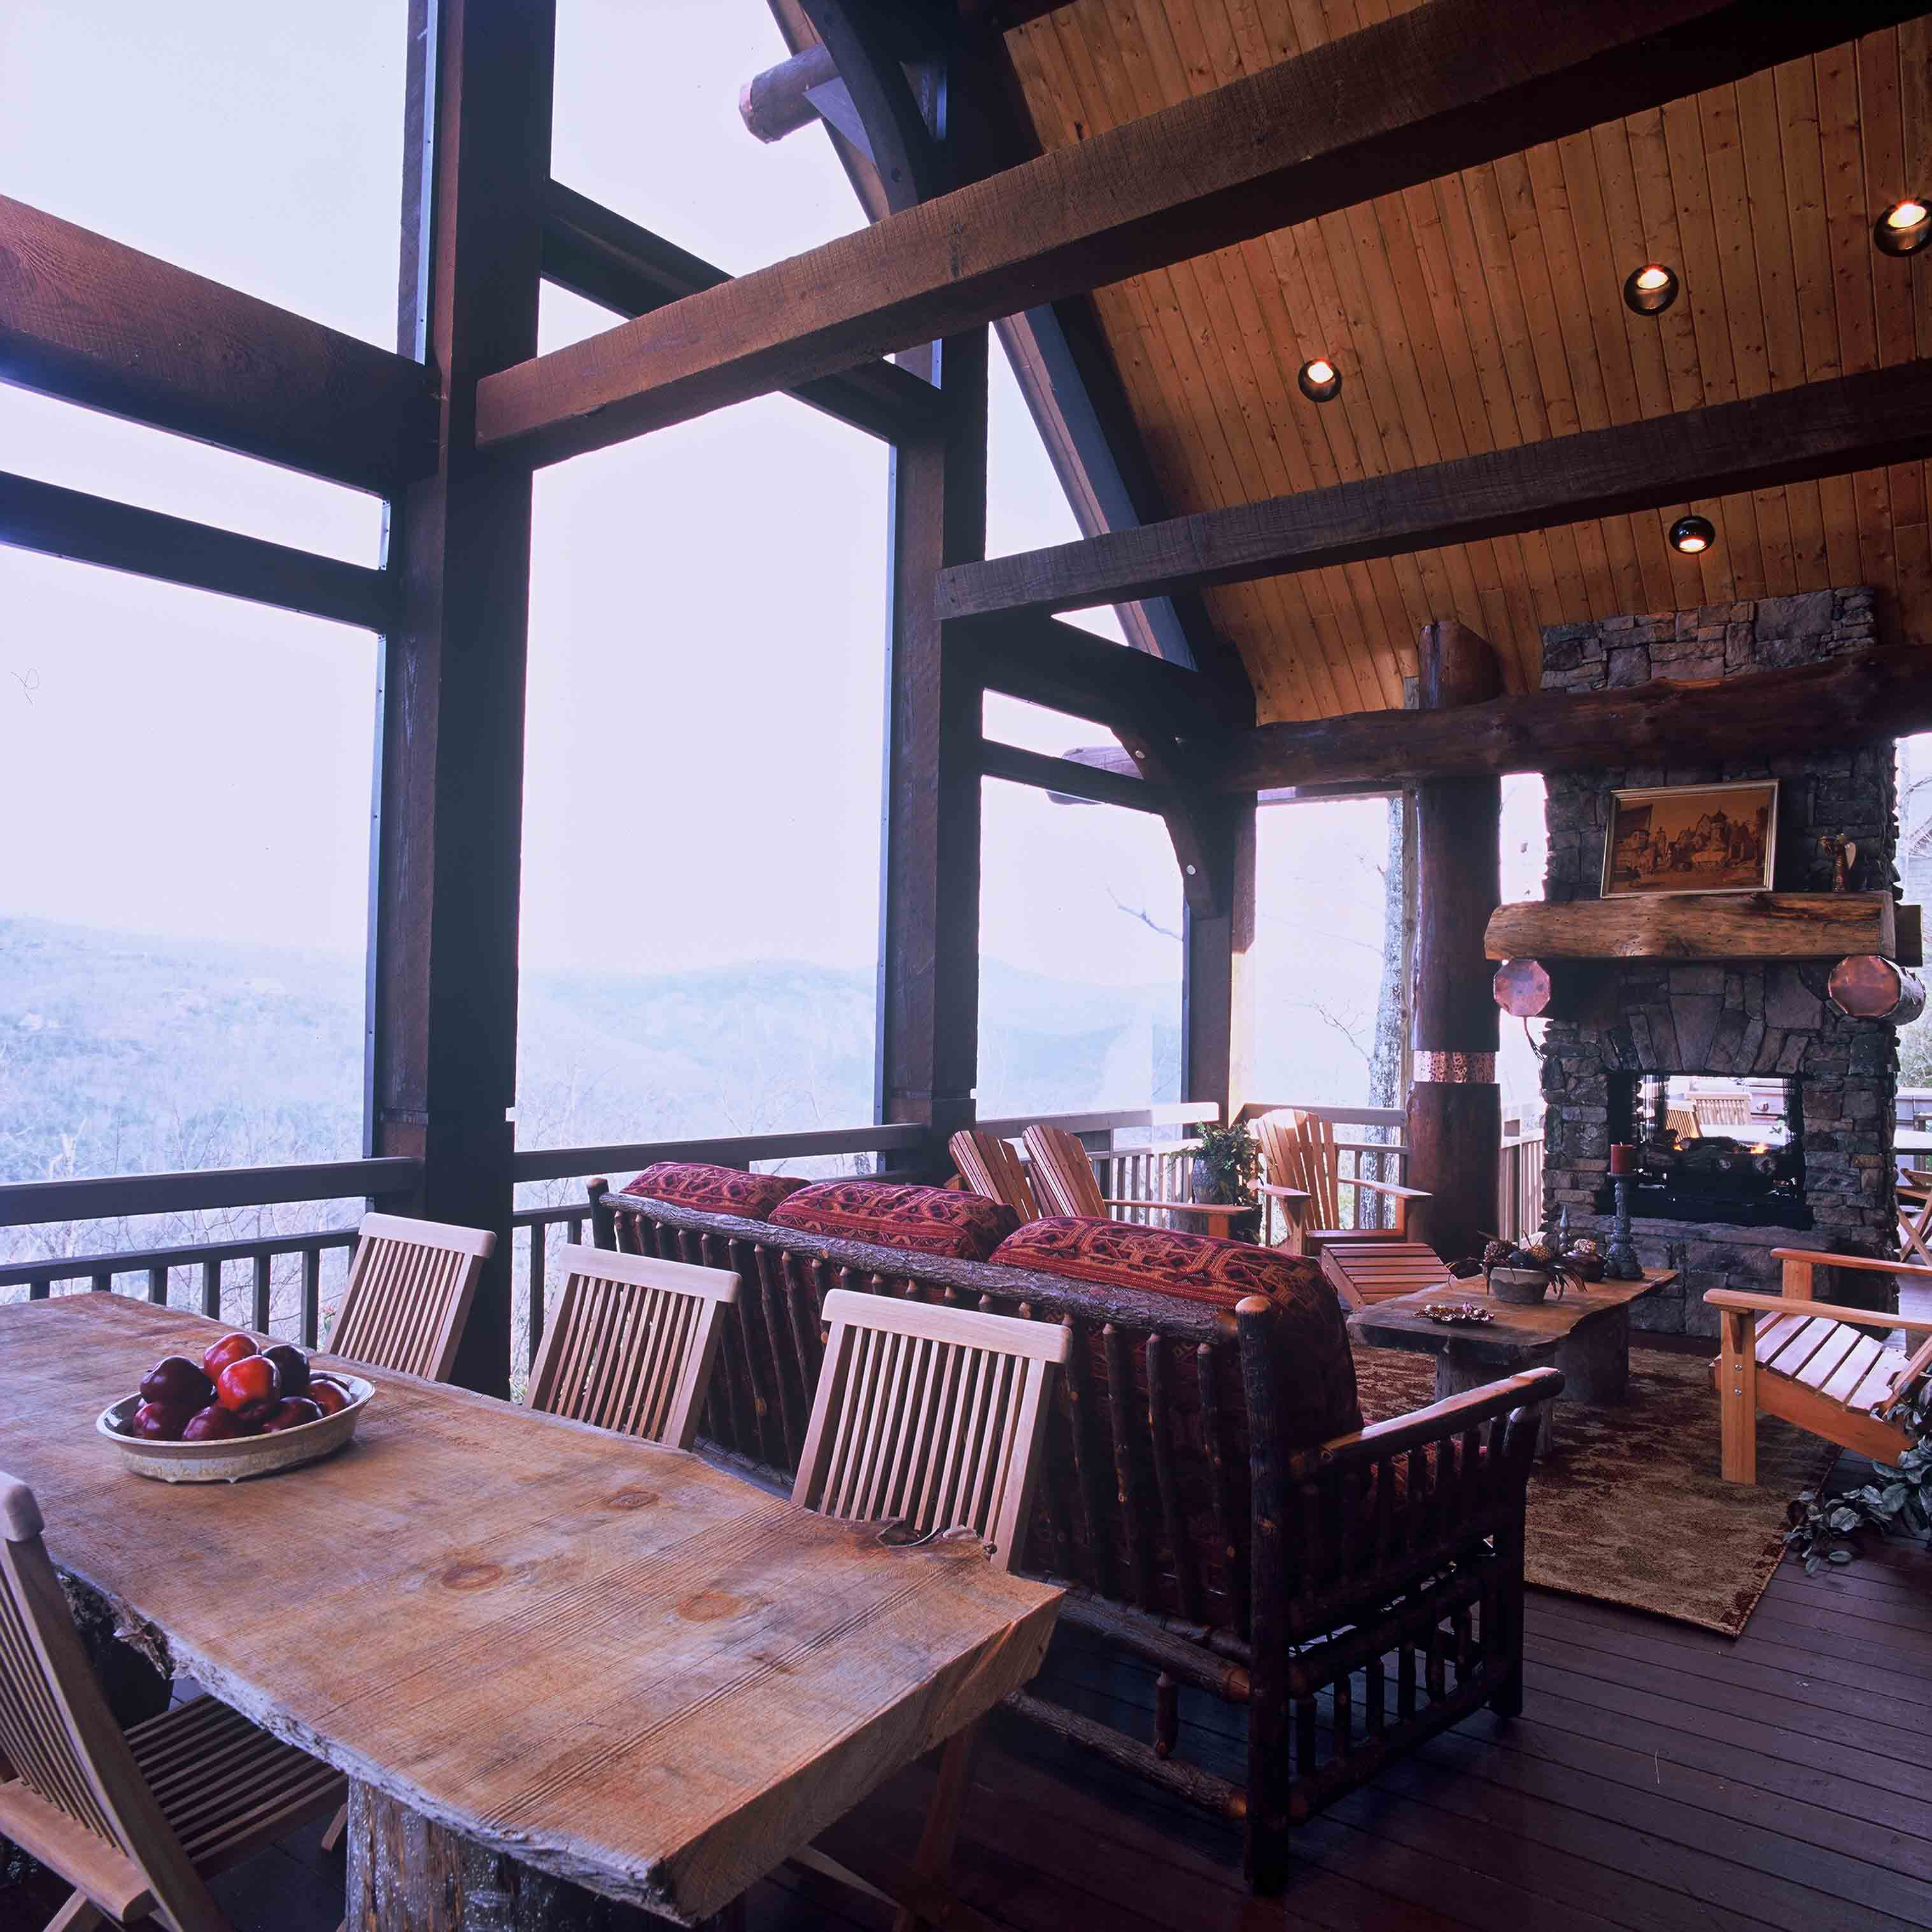 Timber Outdoor Living: Sustainable Design Approach By Shading Glass With Outdoor